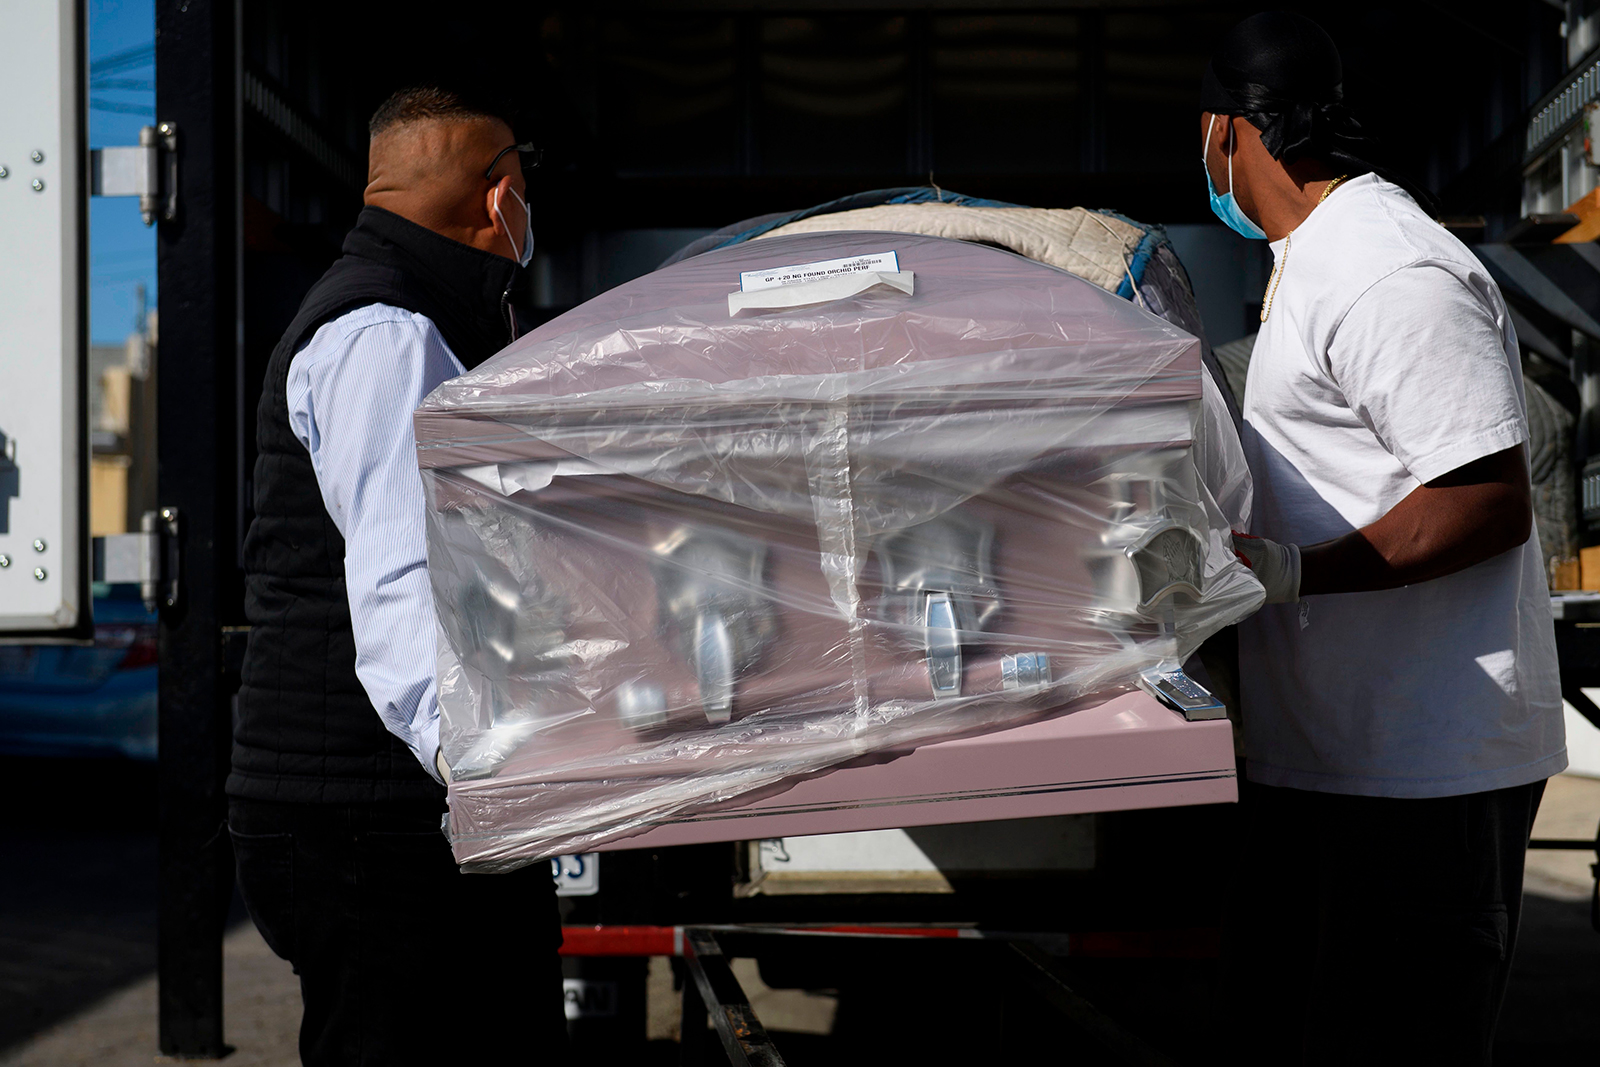 An empty casket is delivered amid a surge of Covid-19 deaths to the Continental Funeral Home in East Los Angeles, California, on December 31, 2020.